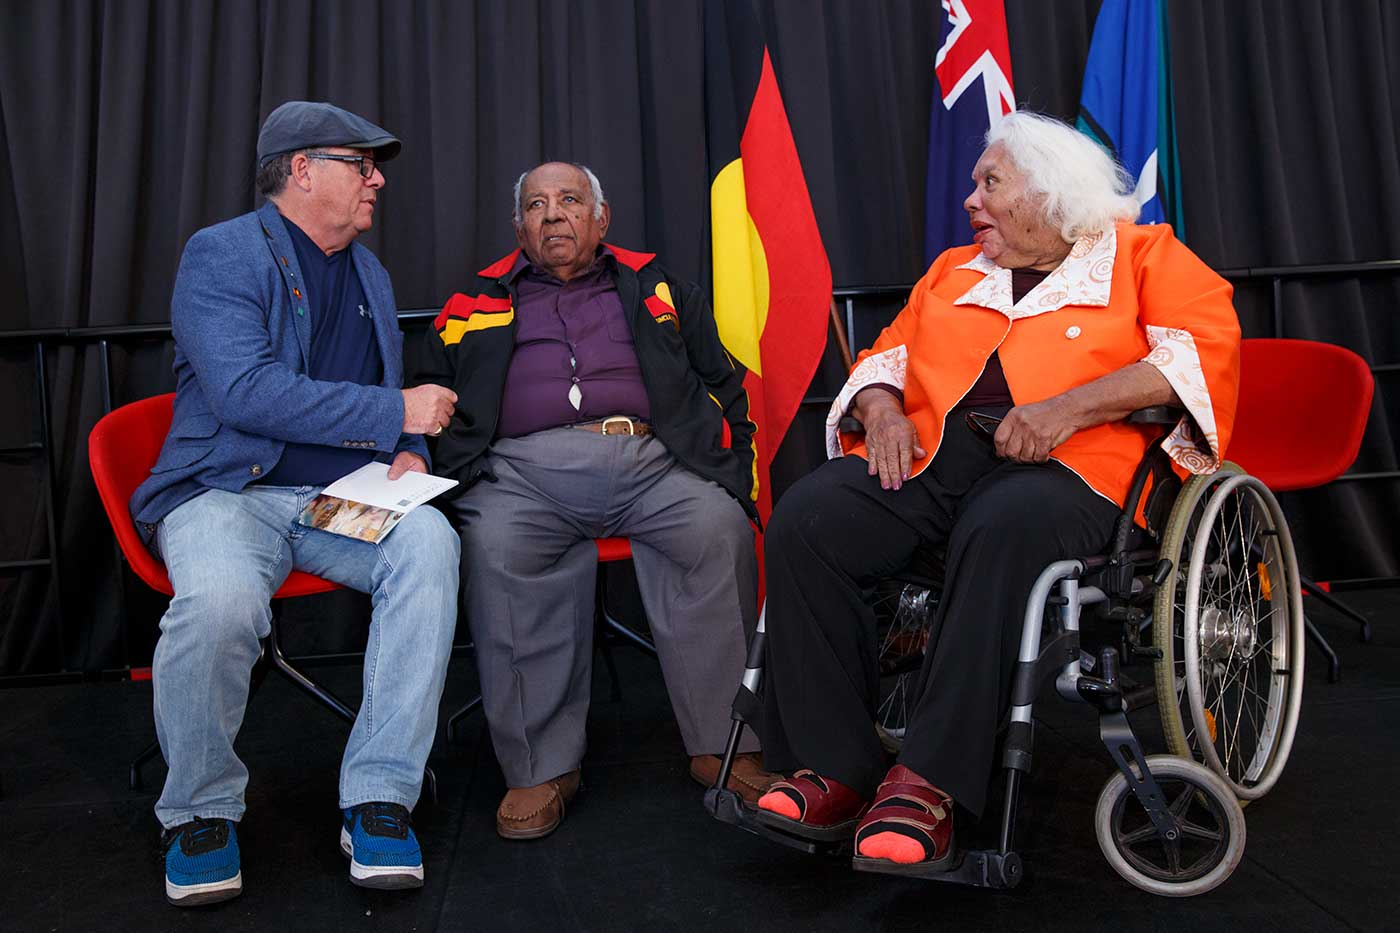 Two men and a woman in a wheel chair, on a stage - click to view larger image